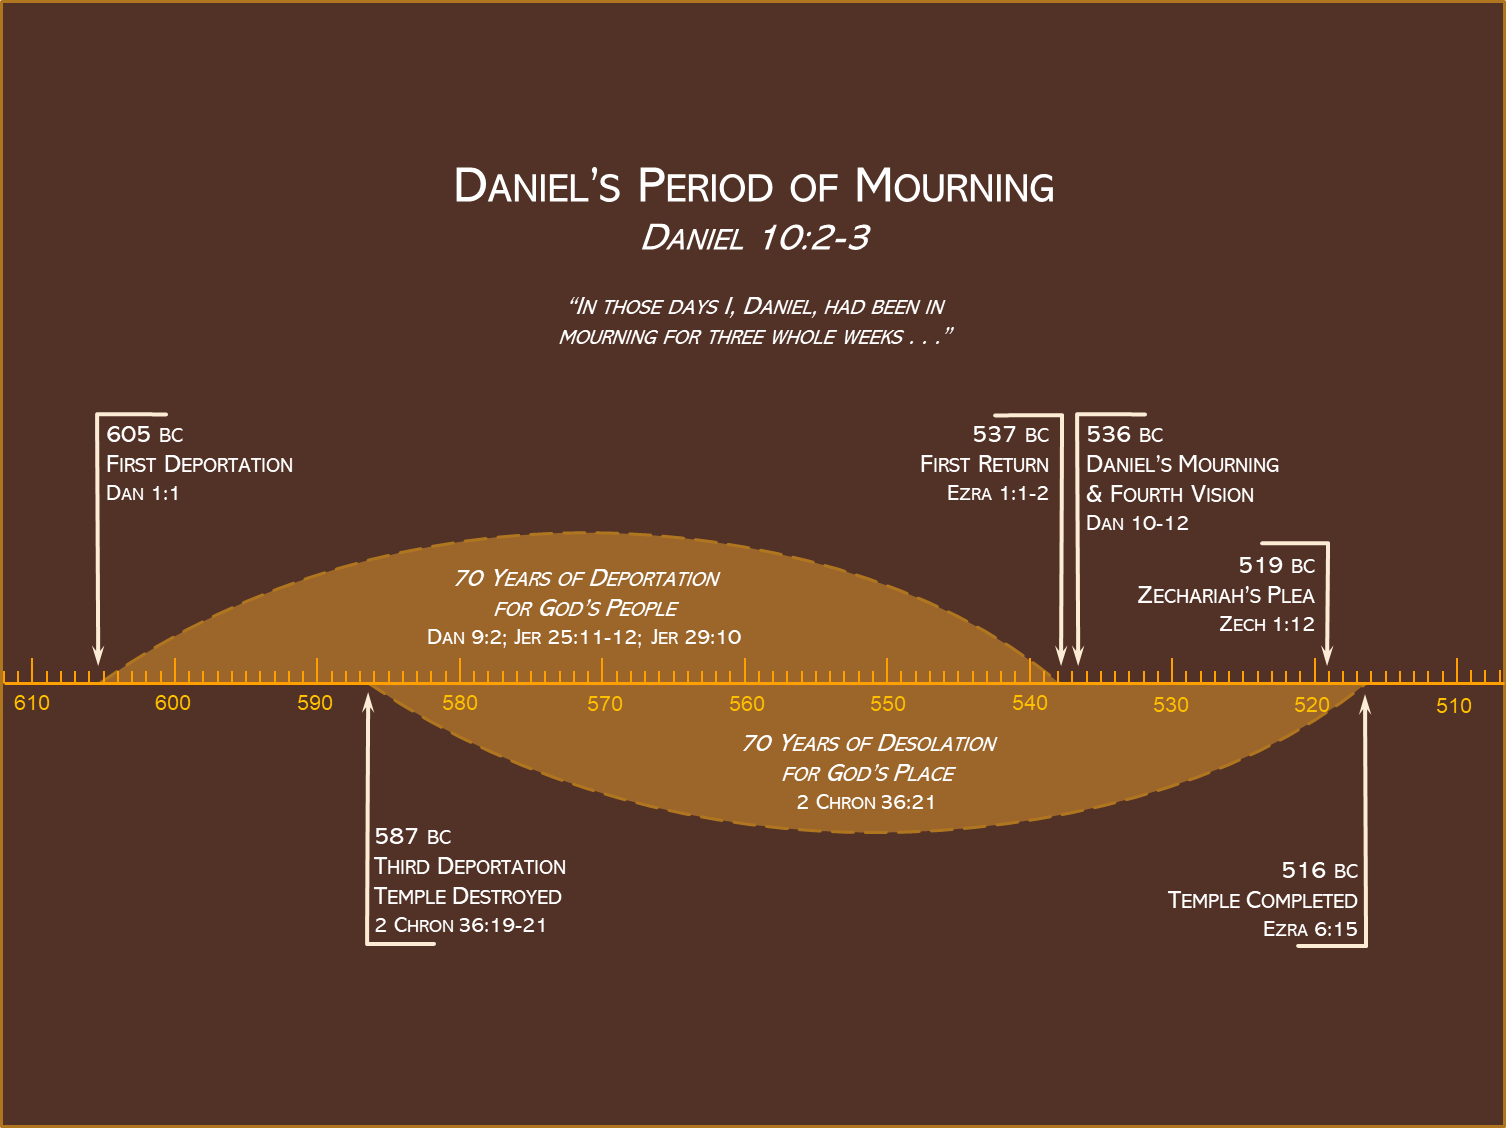 Daniel's Mourning